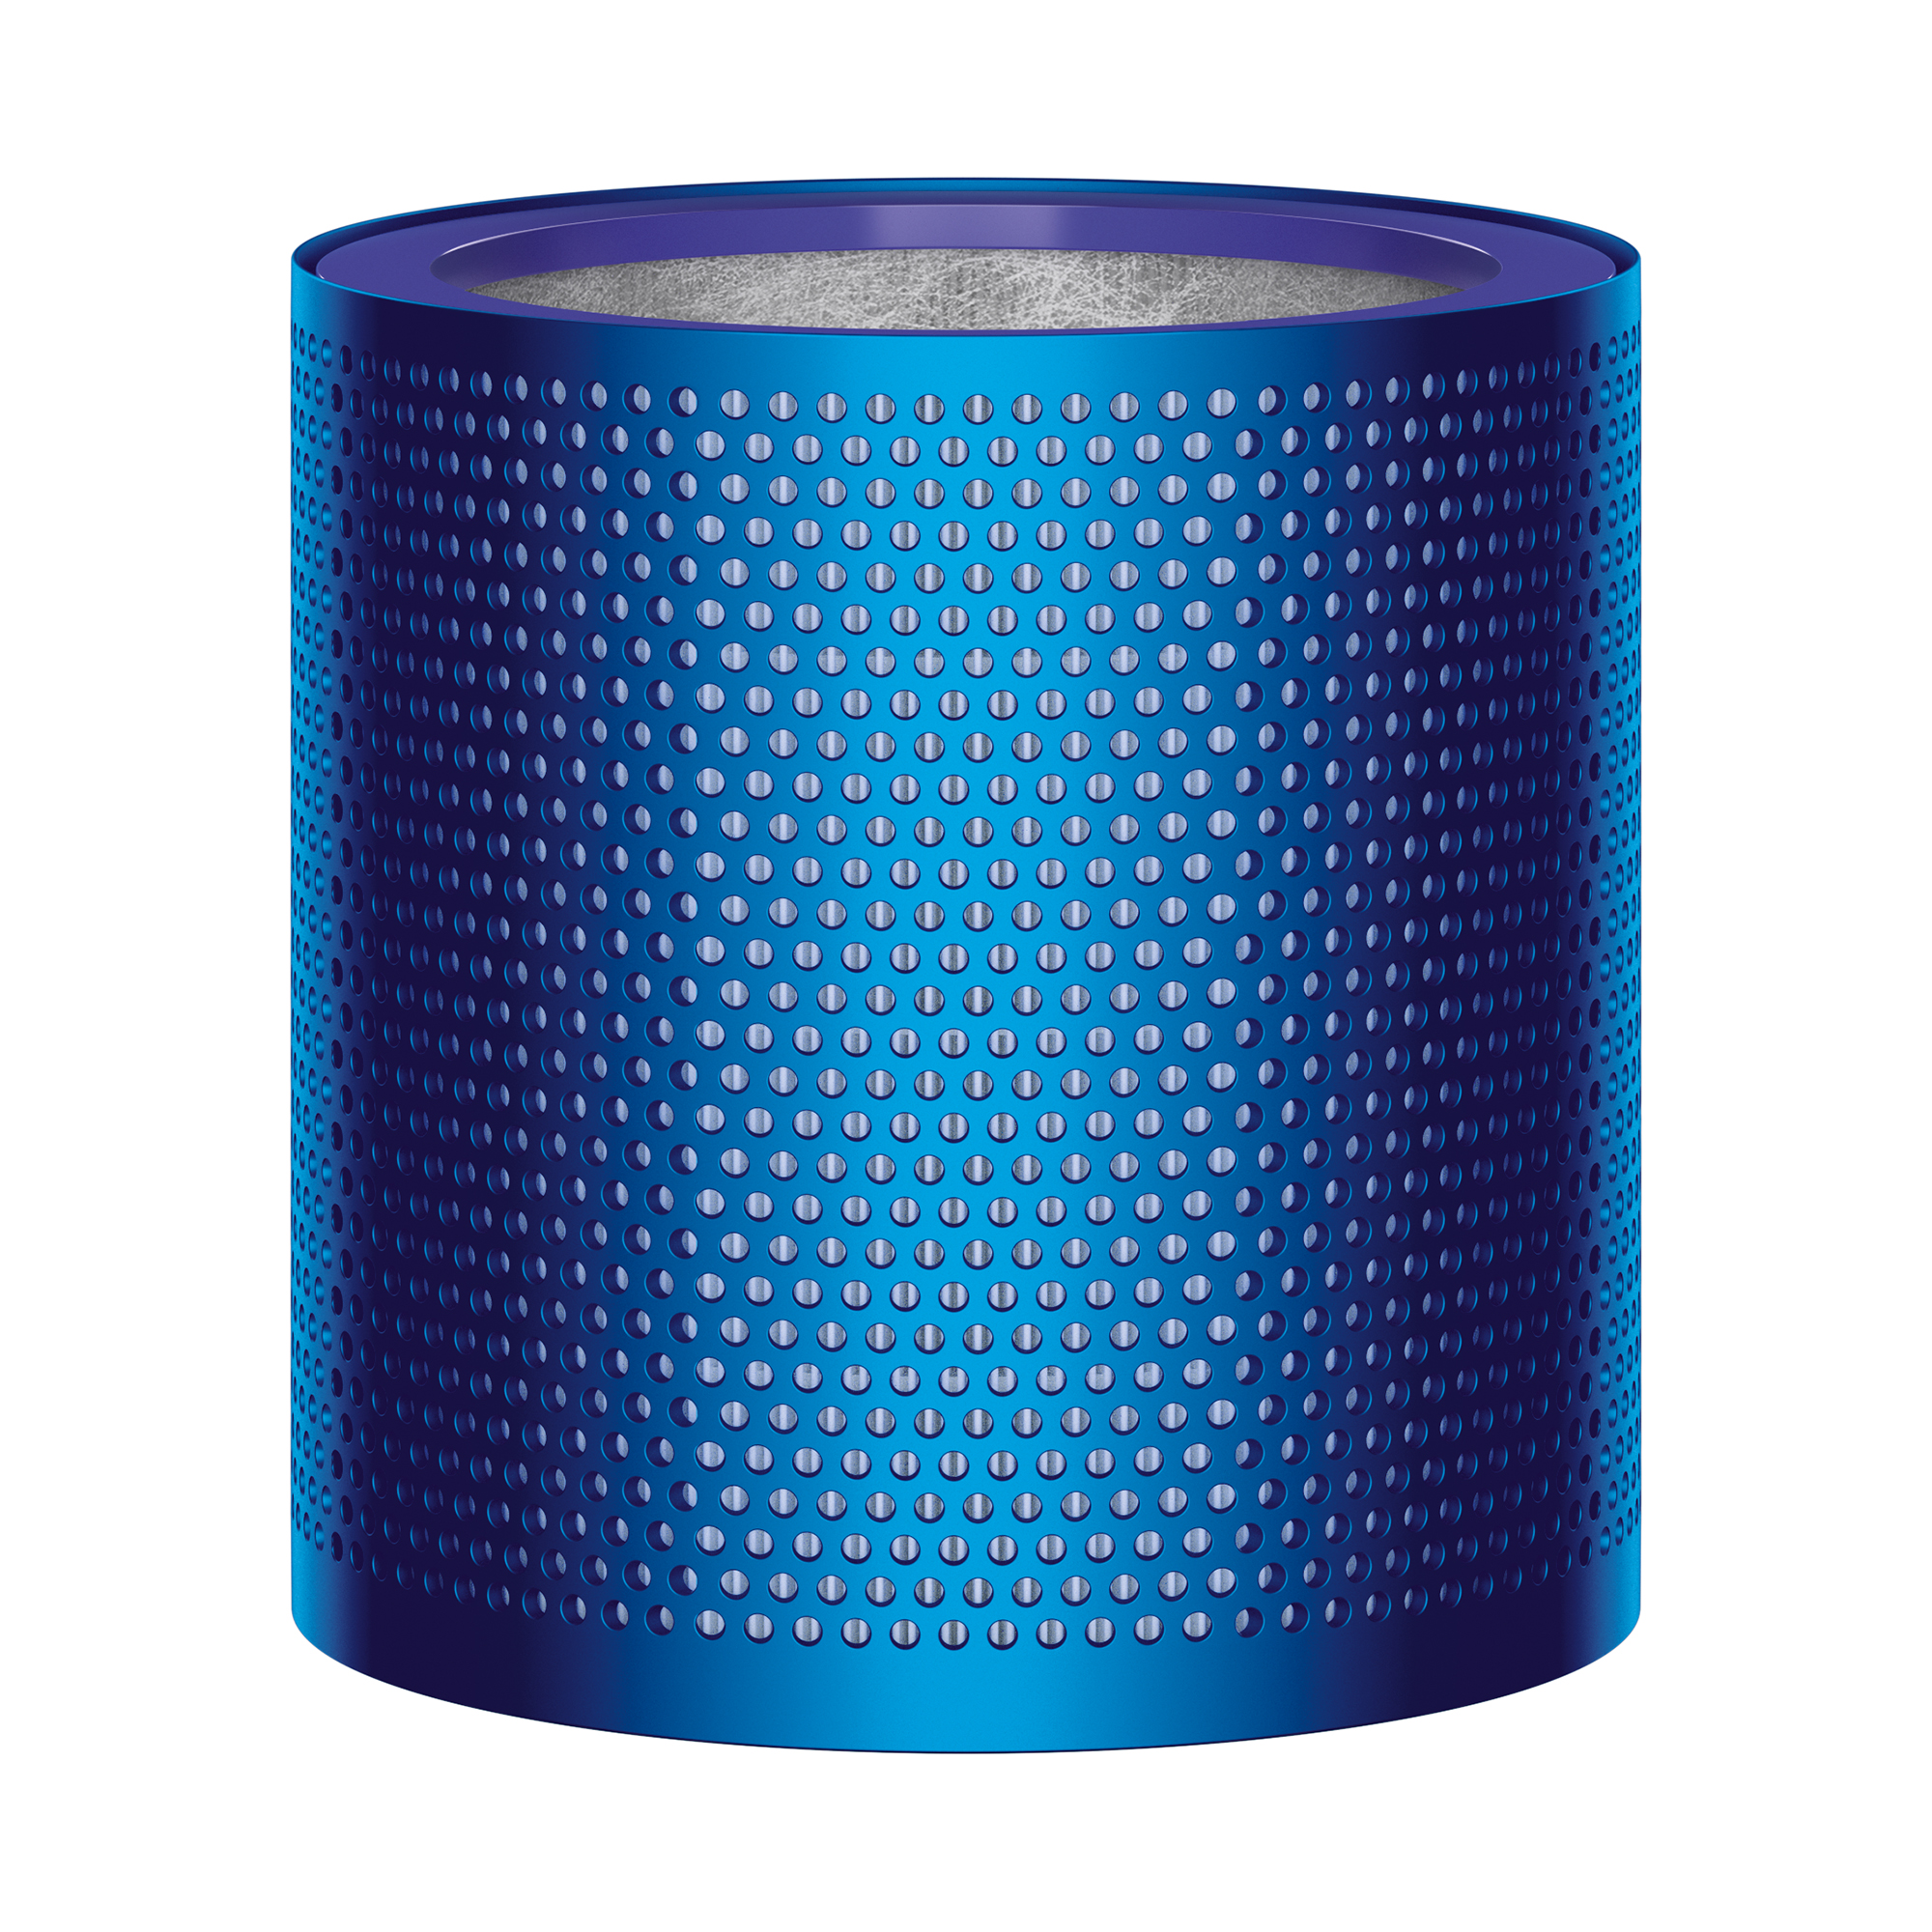 Dyson-TP02-Pure-Cool-Link-Tower-Purifier-amp-Fan thumbnail 7